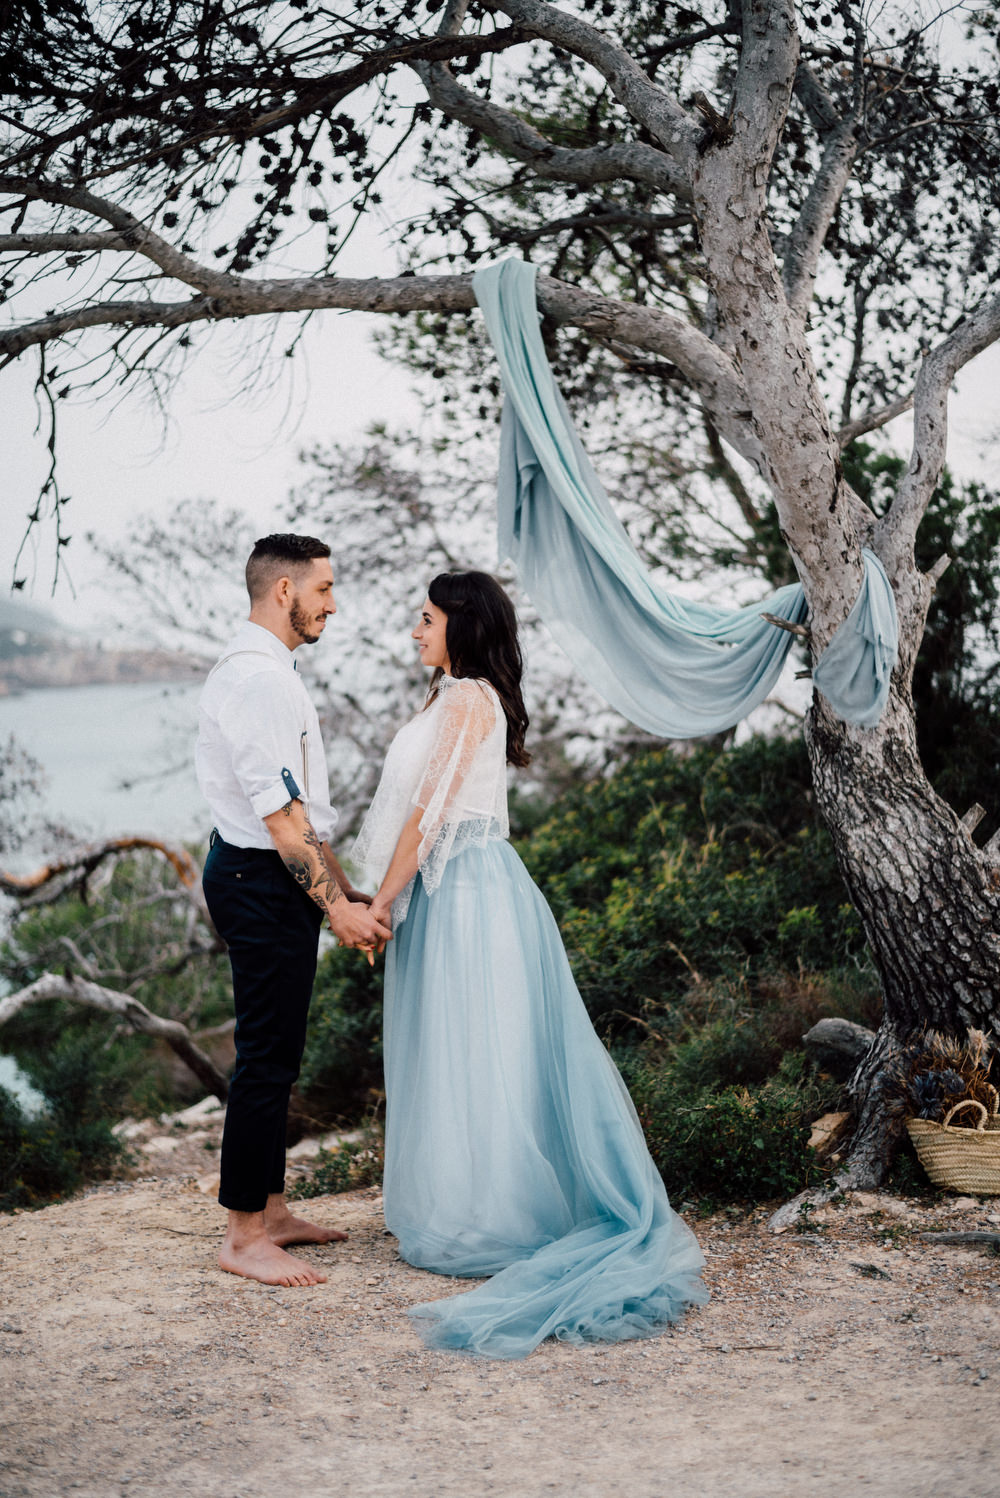 Outdoor Wild Nature Destination Spain Europe Sea Beach Styled Shoot Groom Braces Bride Blue Gown Lace Ceremony   Blue Ibiza Elopement Ideas and Surprise Proposal Serena Genovese Photography